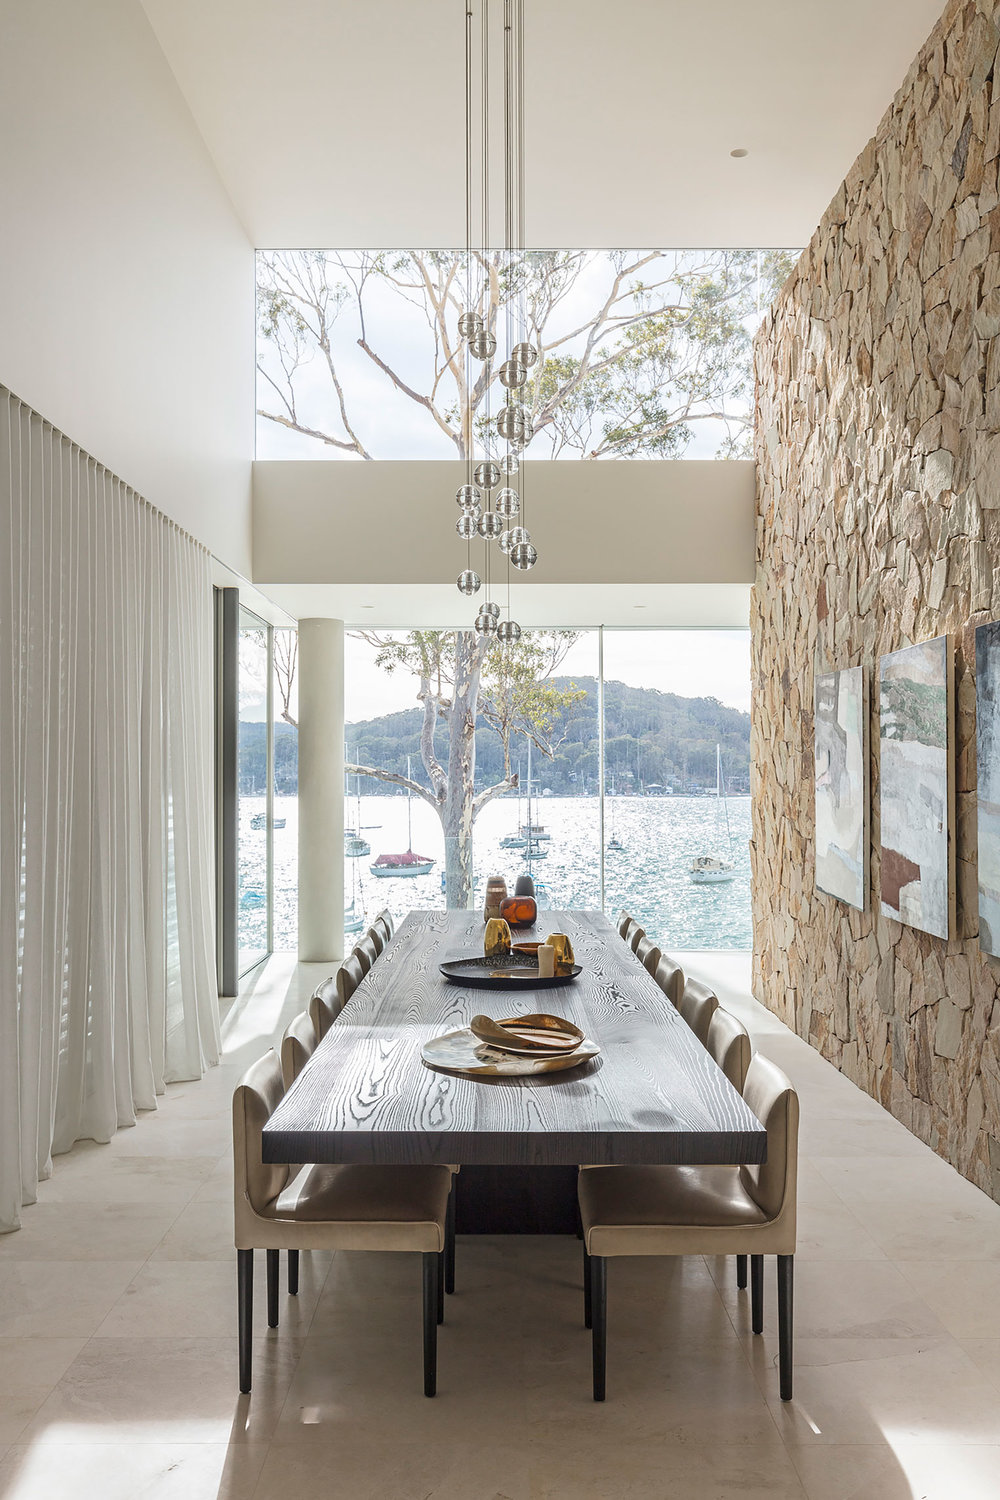 Particularly inspired by the 'hues and textures of the area's 'sand, bush and water', the home features creamy, whitish-grey in-situ concrete walls, bleached European Oak and limestone flooring, soft sandstone-coloured stack stone feature walls, and 'invisible' floor to ceiling Vitrocsa glass.